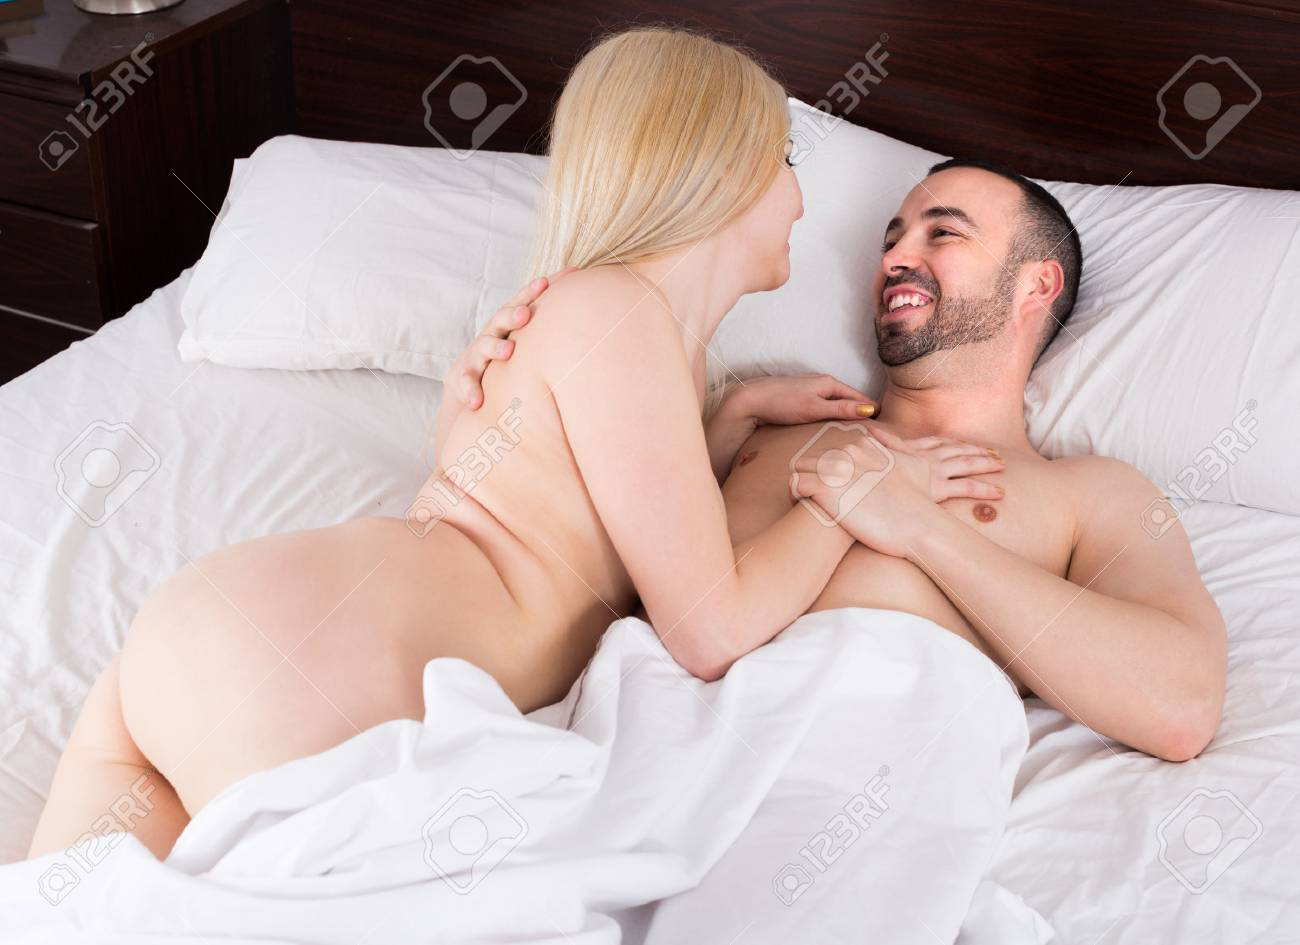 Passionate Young Loving Couple Making Love In Comfortable Family